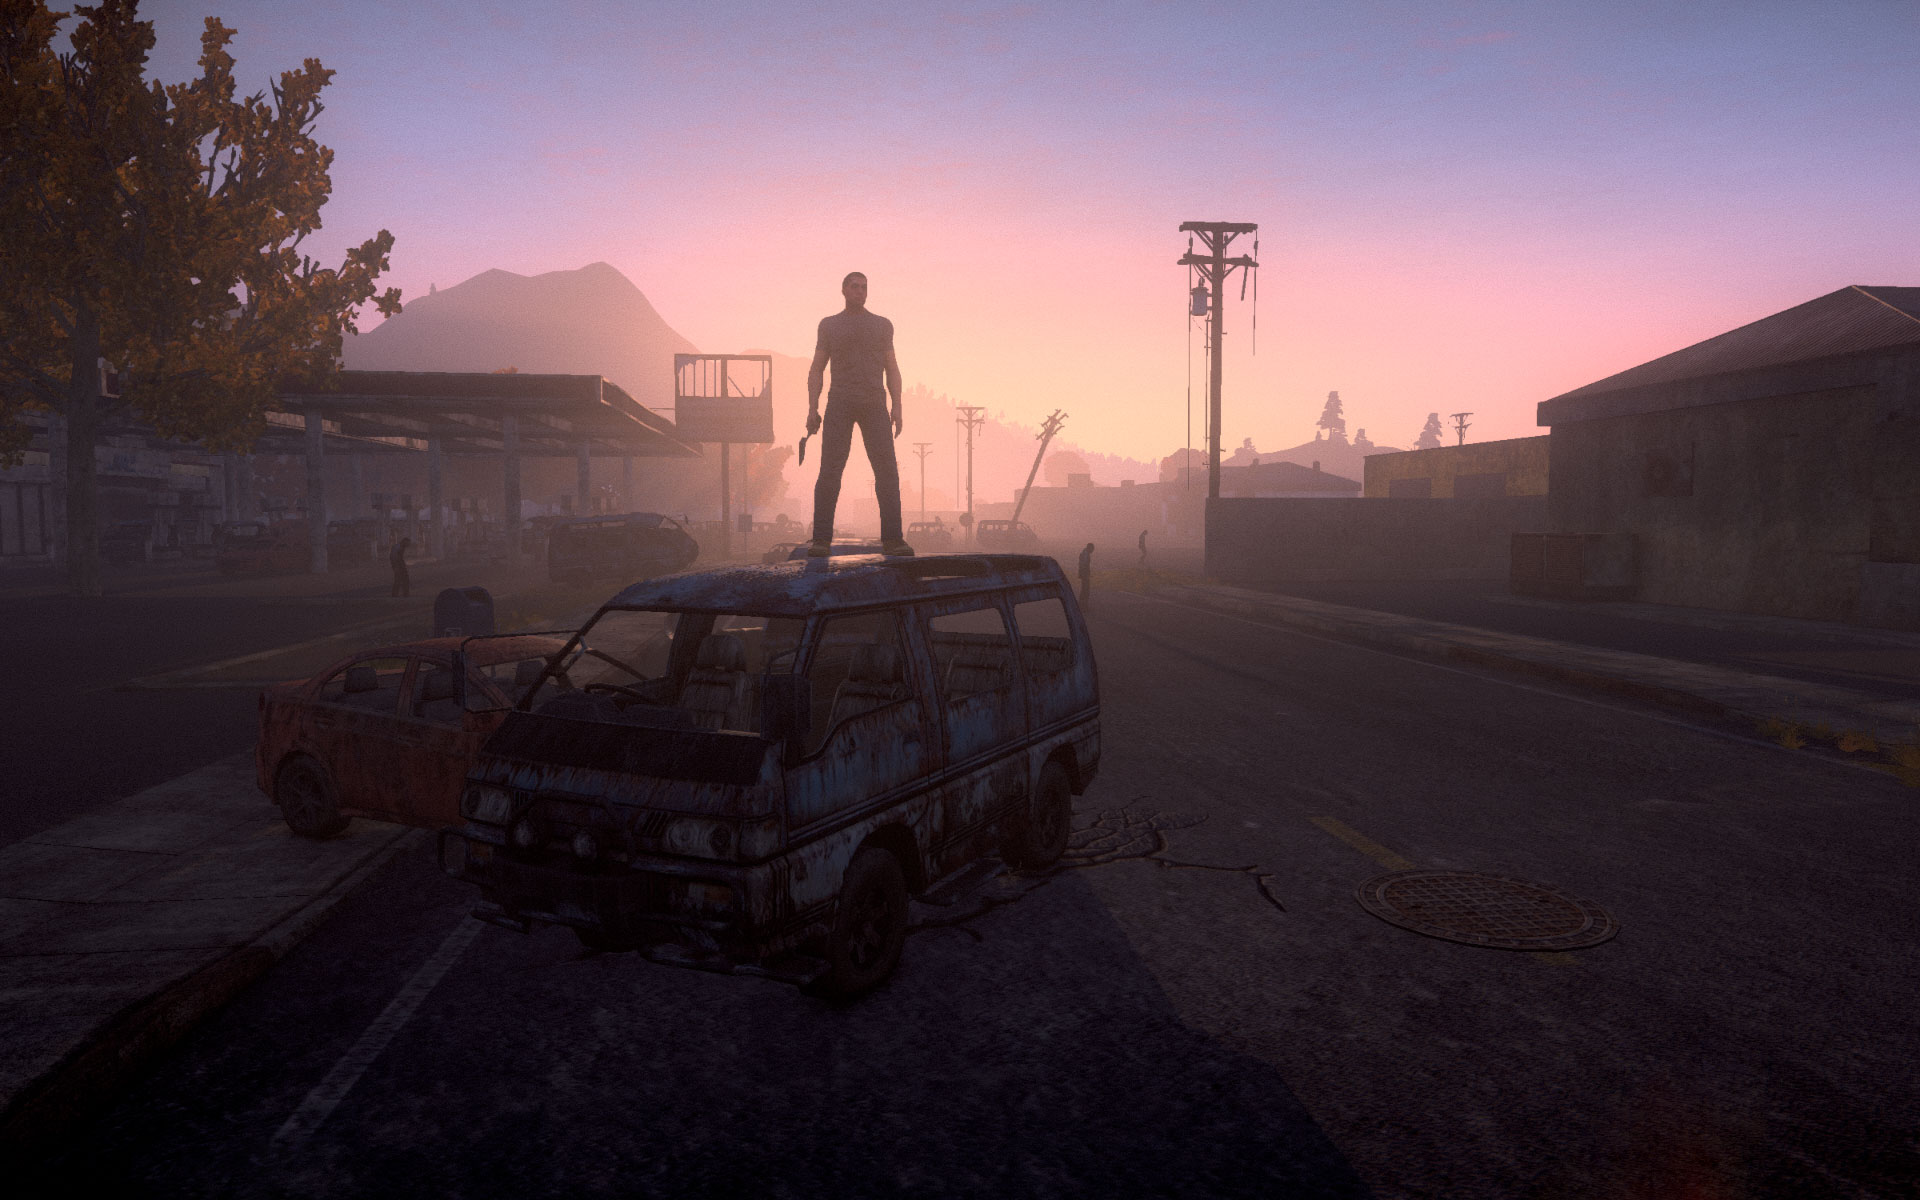 H1Z1 offers refunds over microtransactions [Correction]